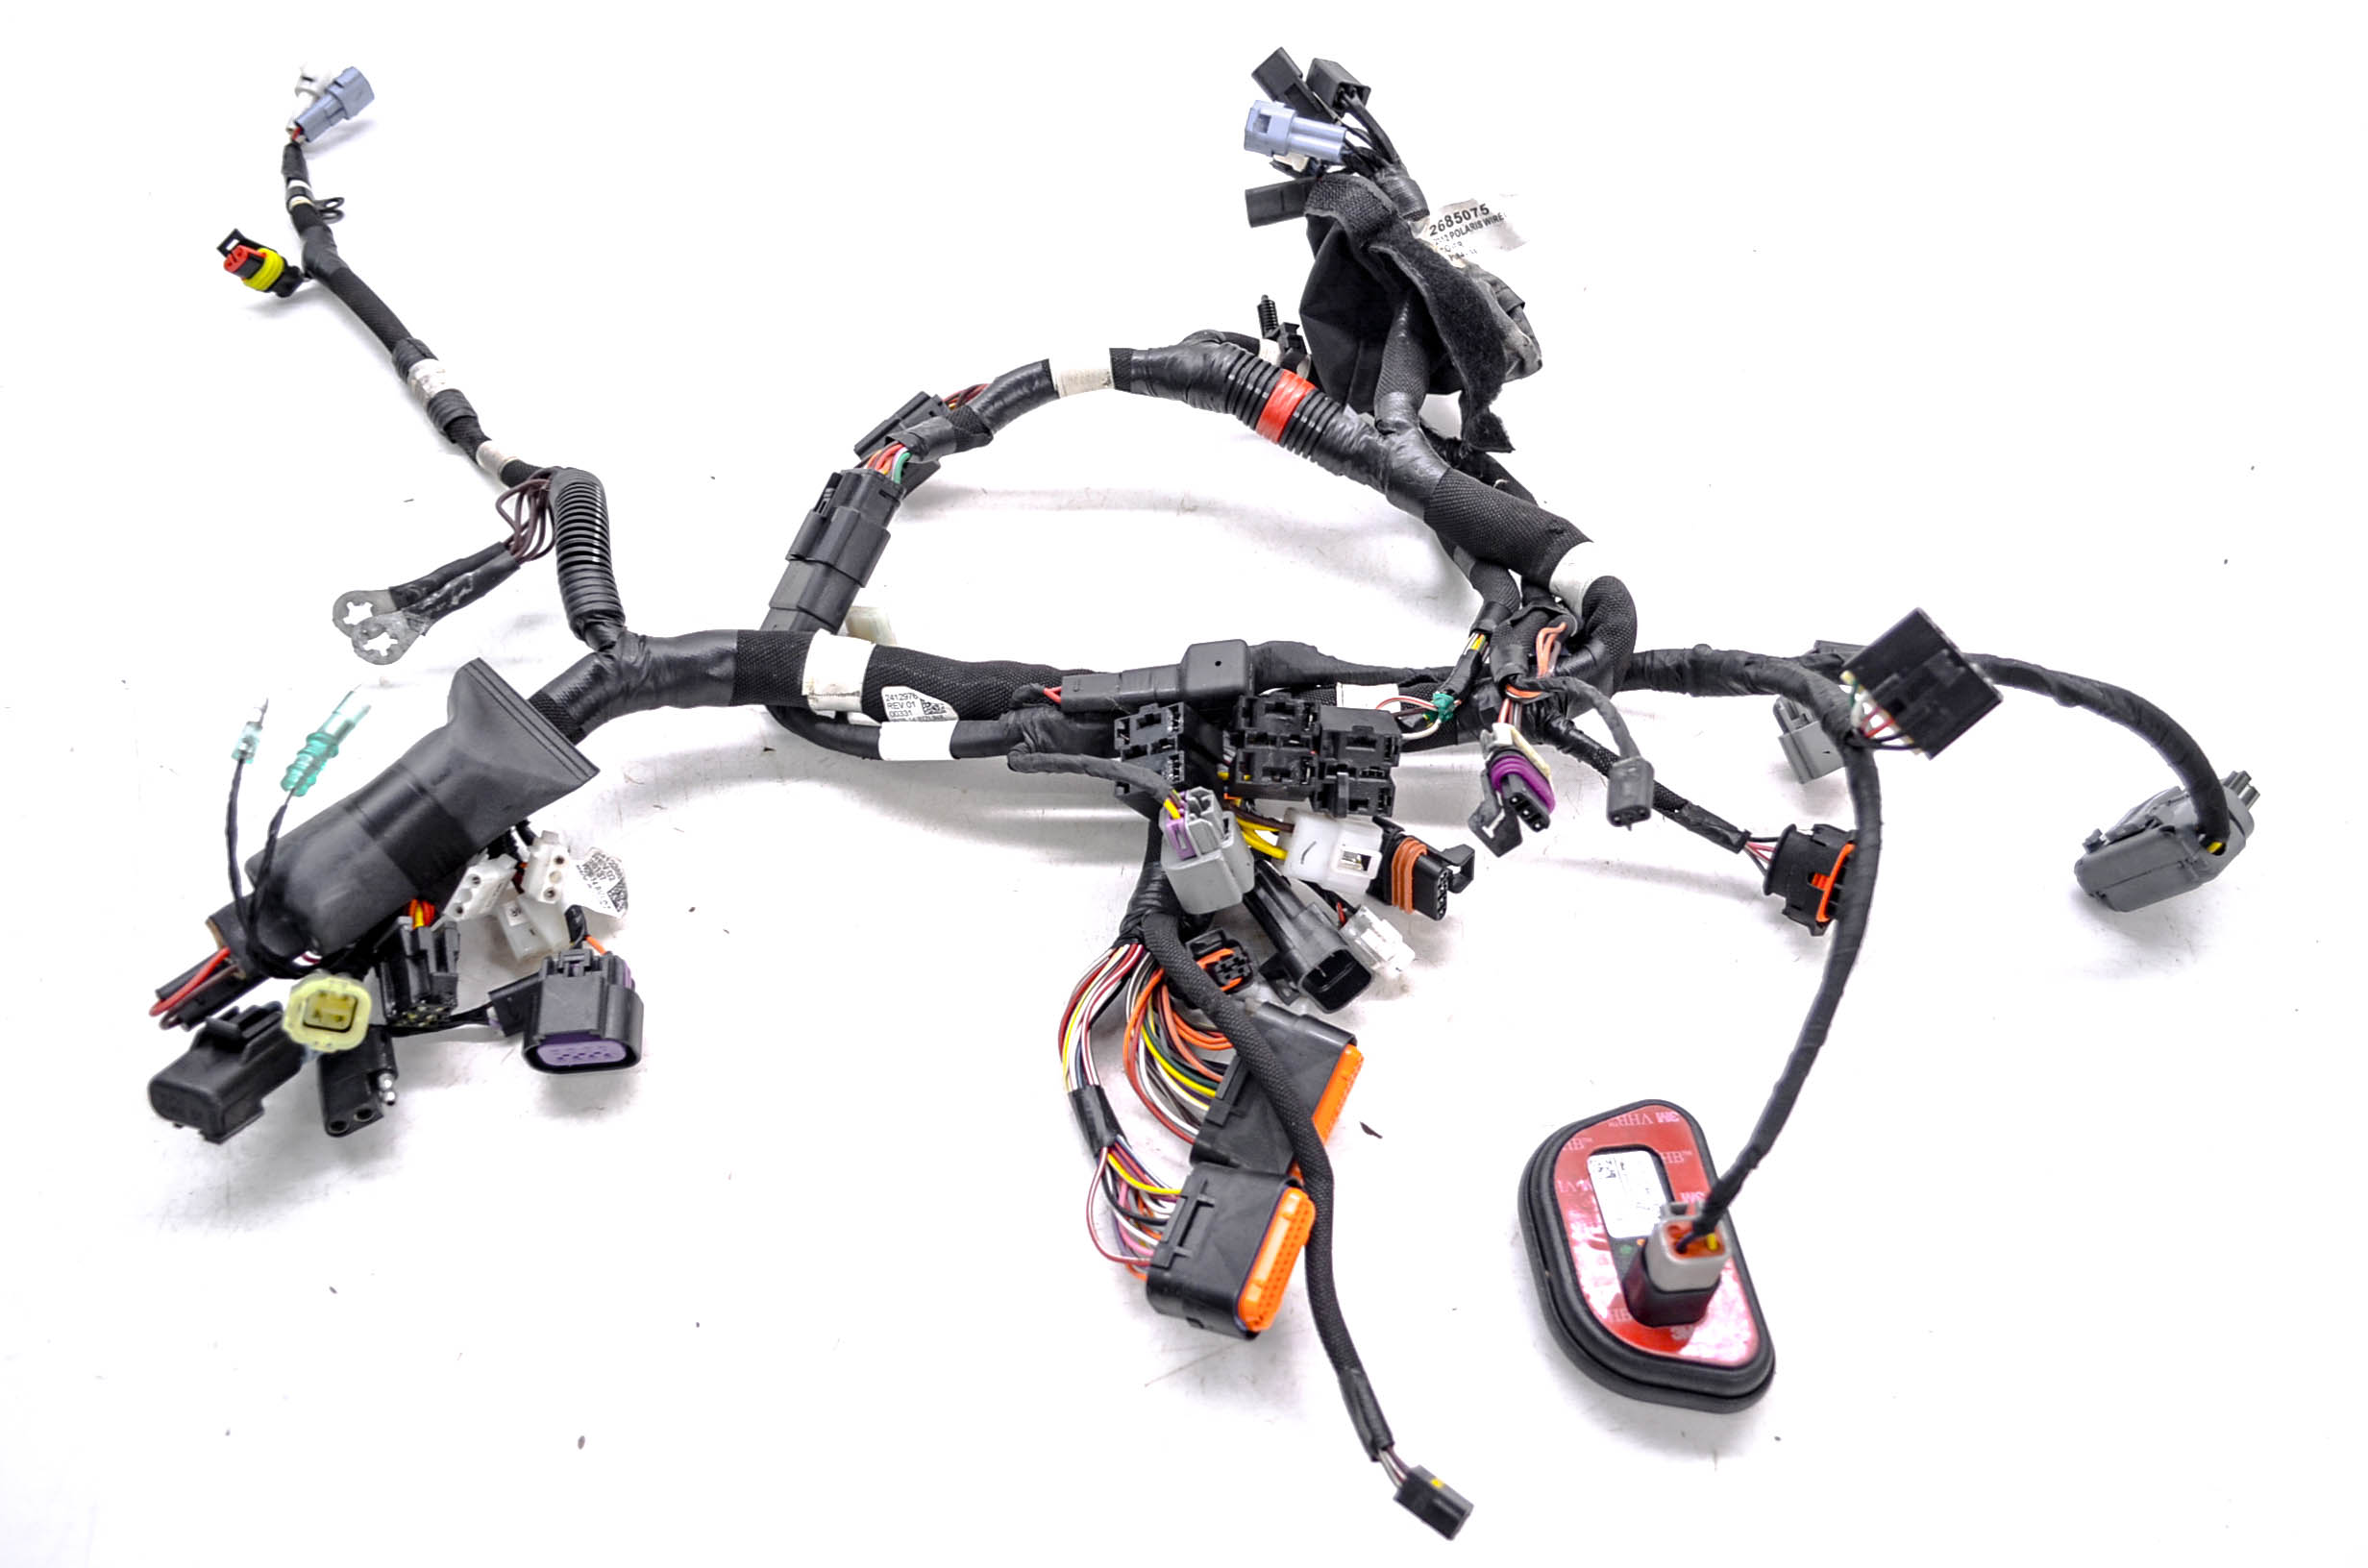 15 Polaris 800 Pro Rmk 155 Wire Harness Electrical Wiring